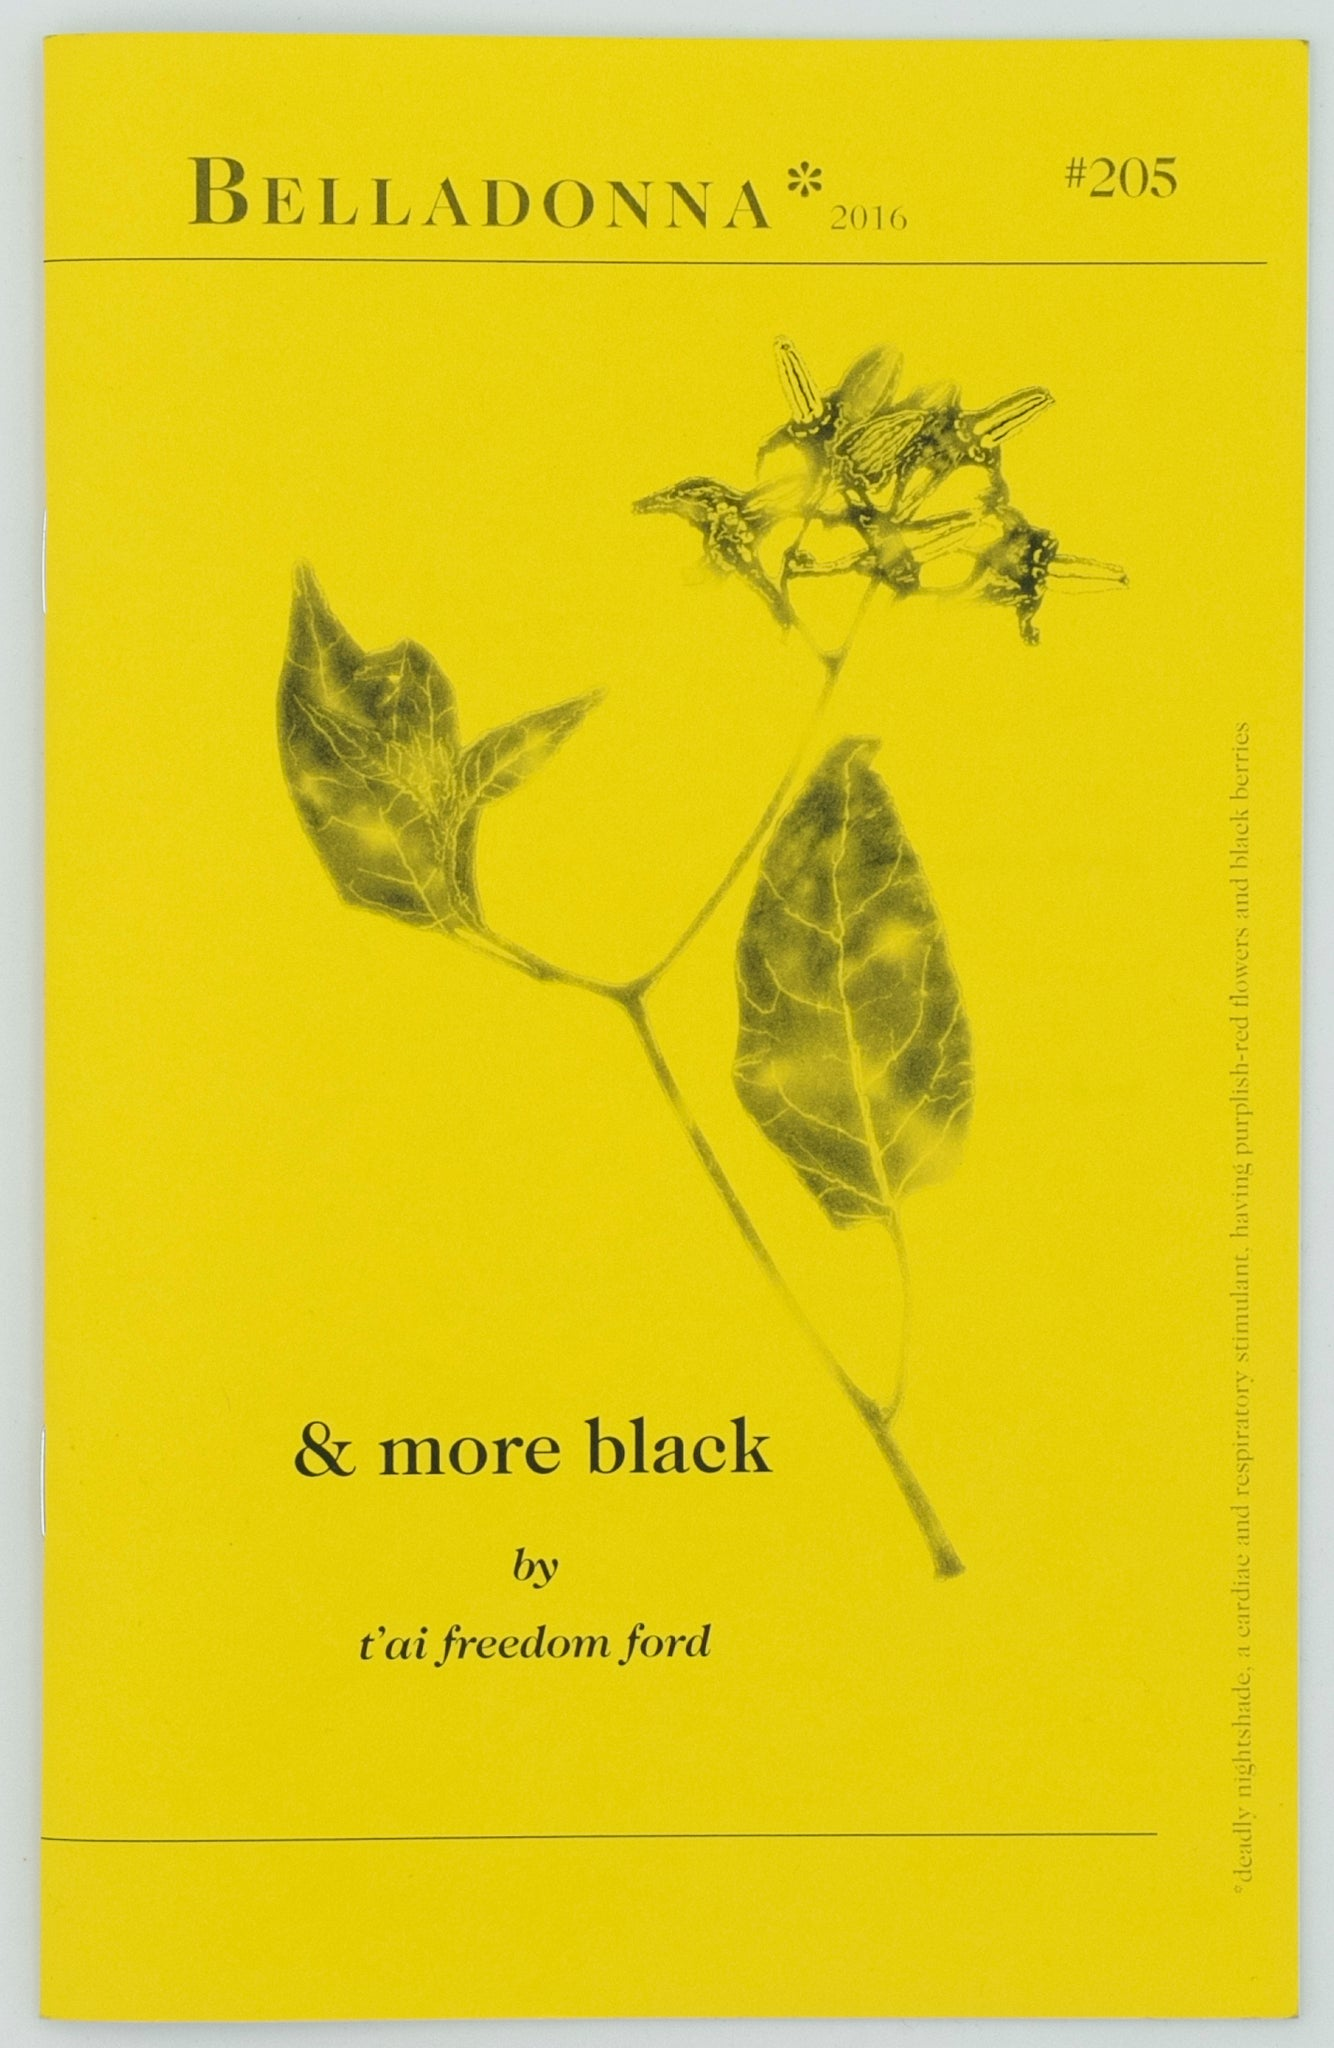 from & More Black (Belladonna* #205)